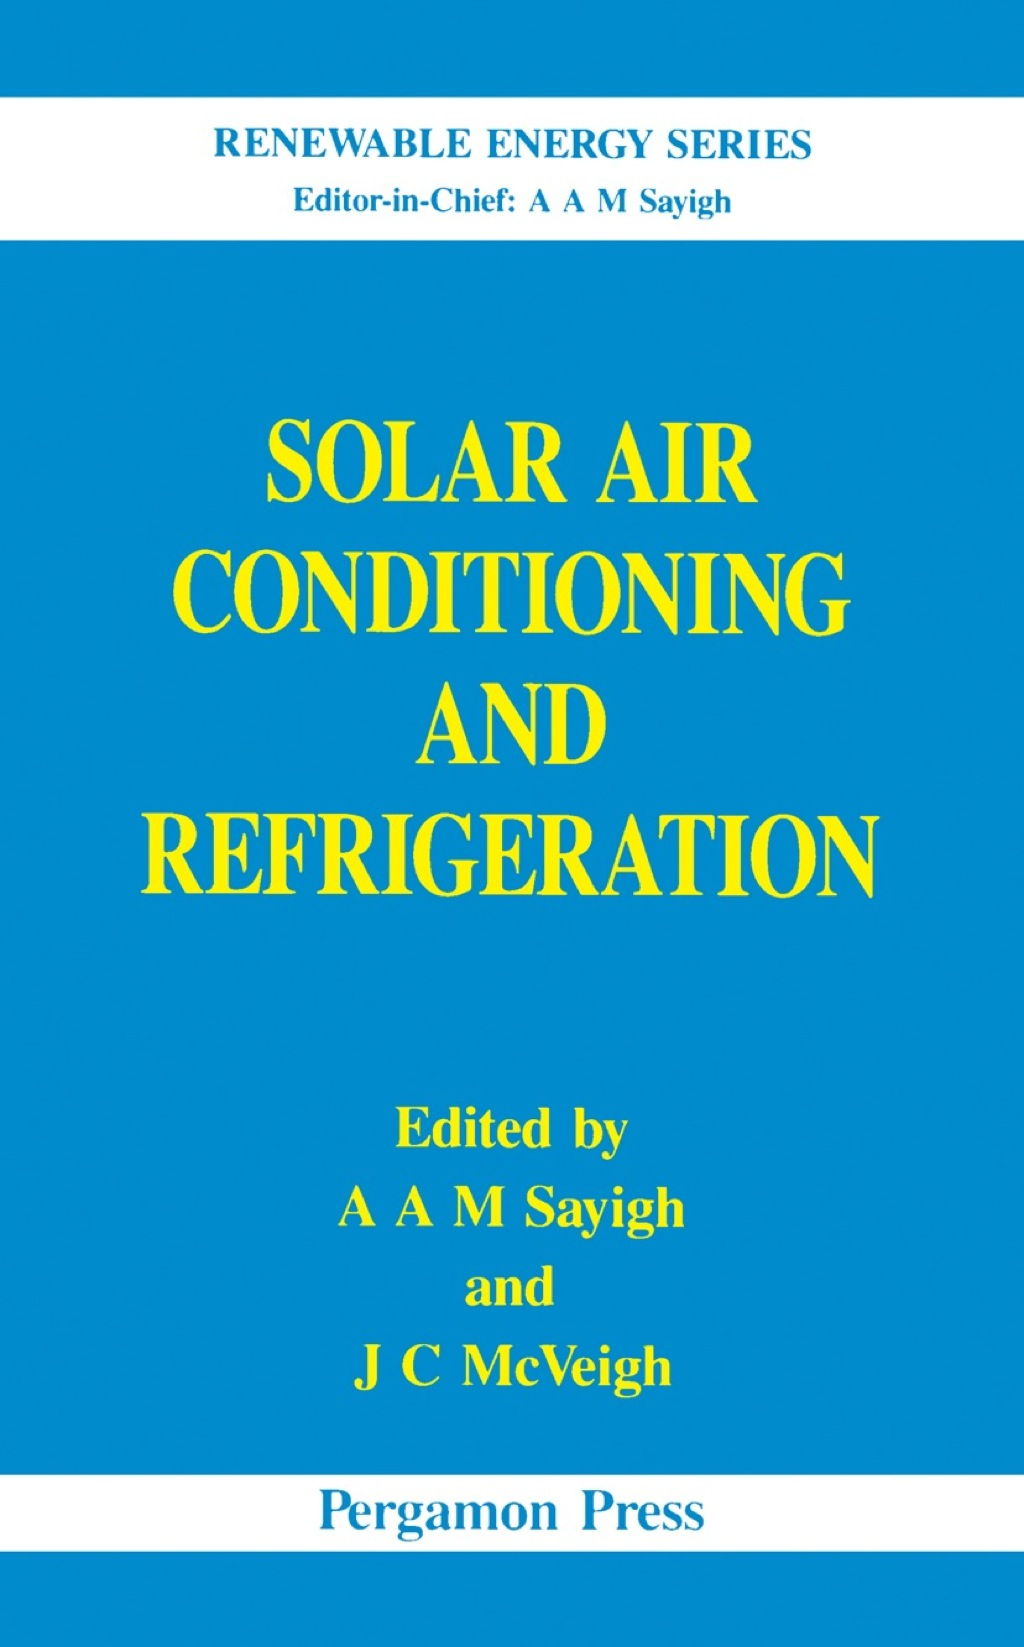 Solar Air Conditioning and Refrigeration (ebook) eBooks